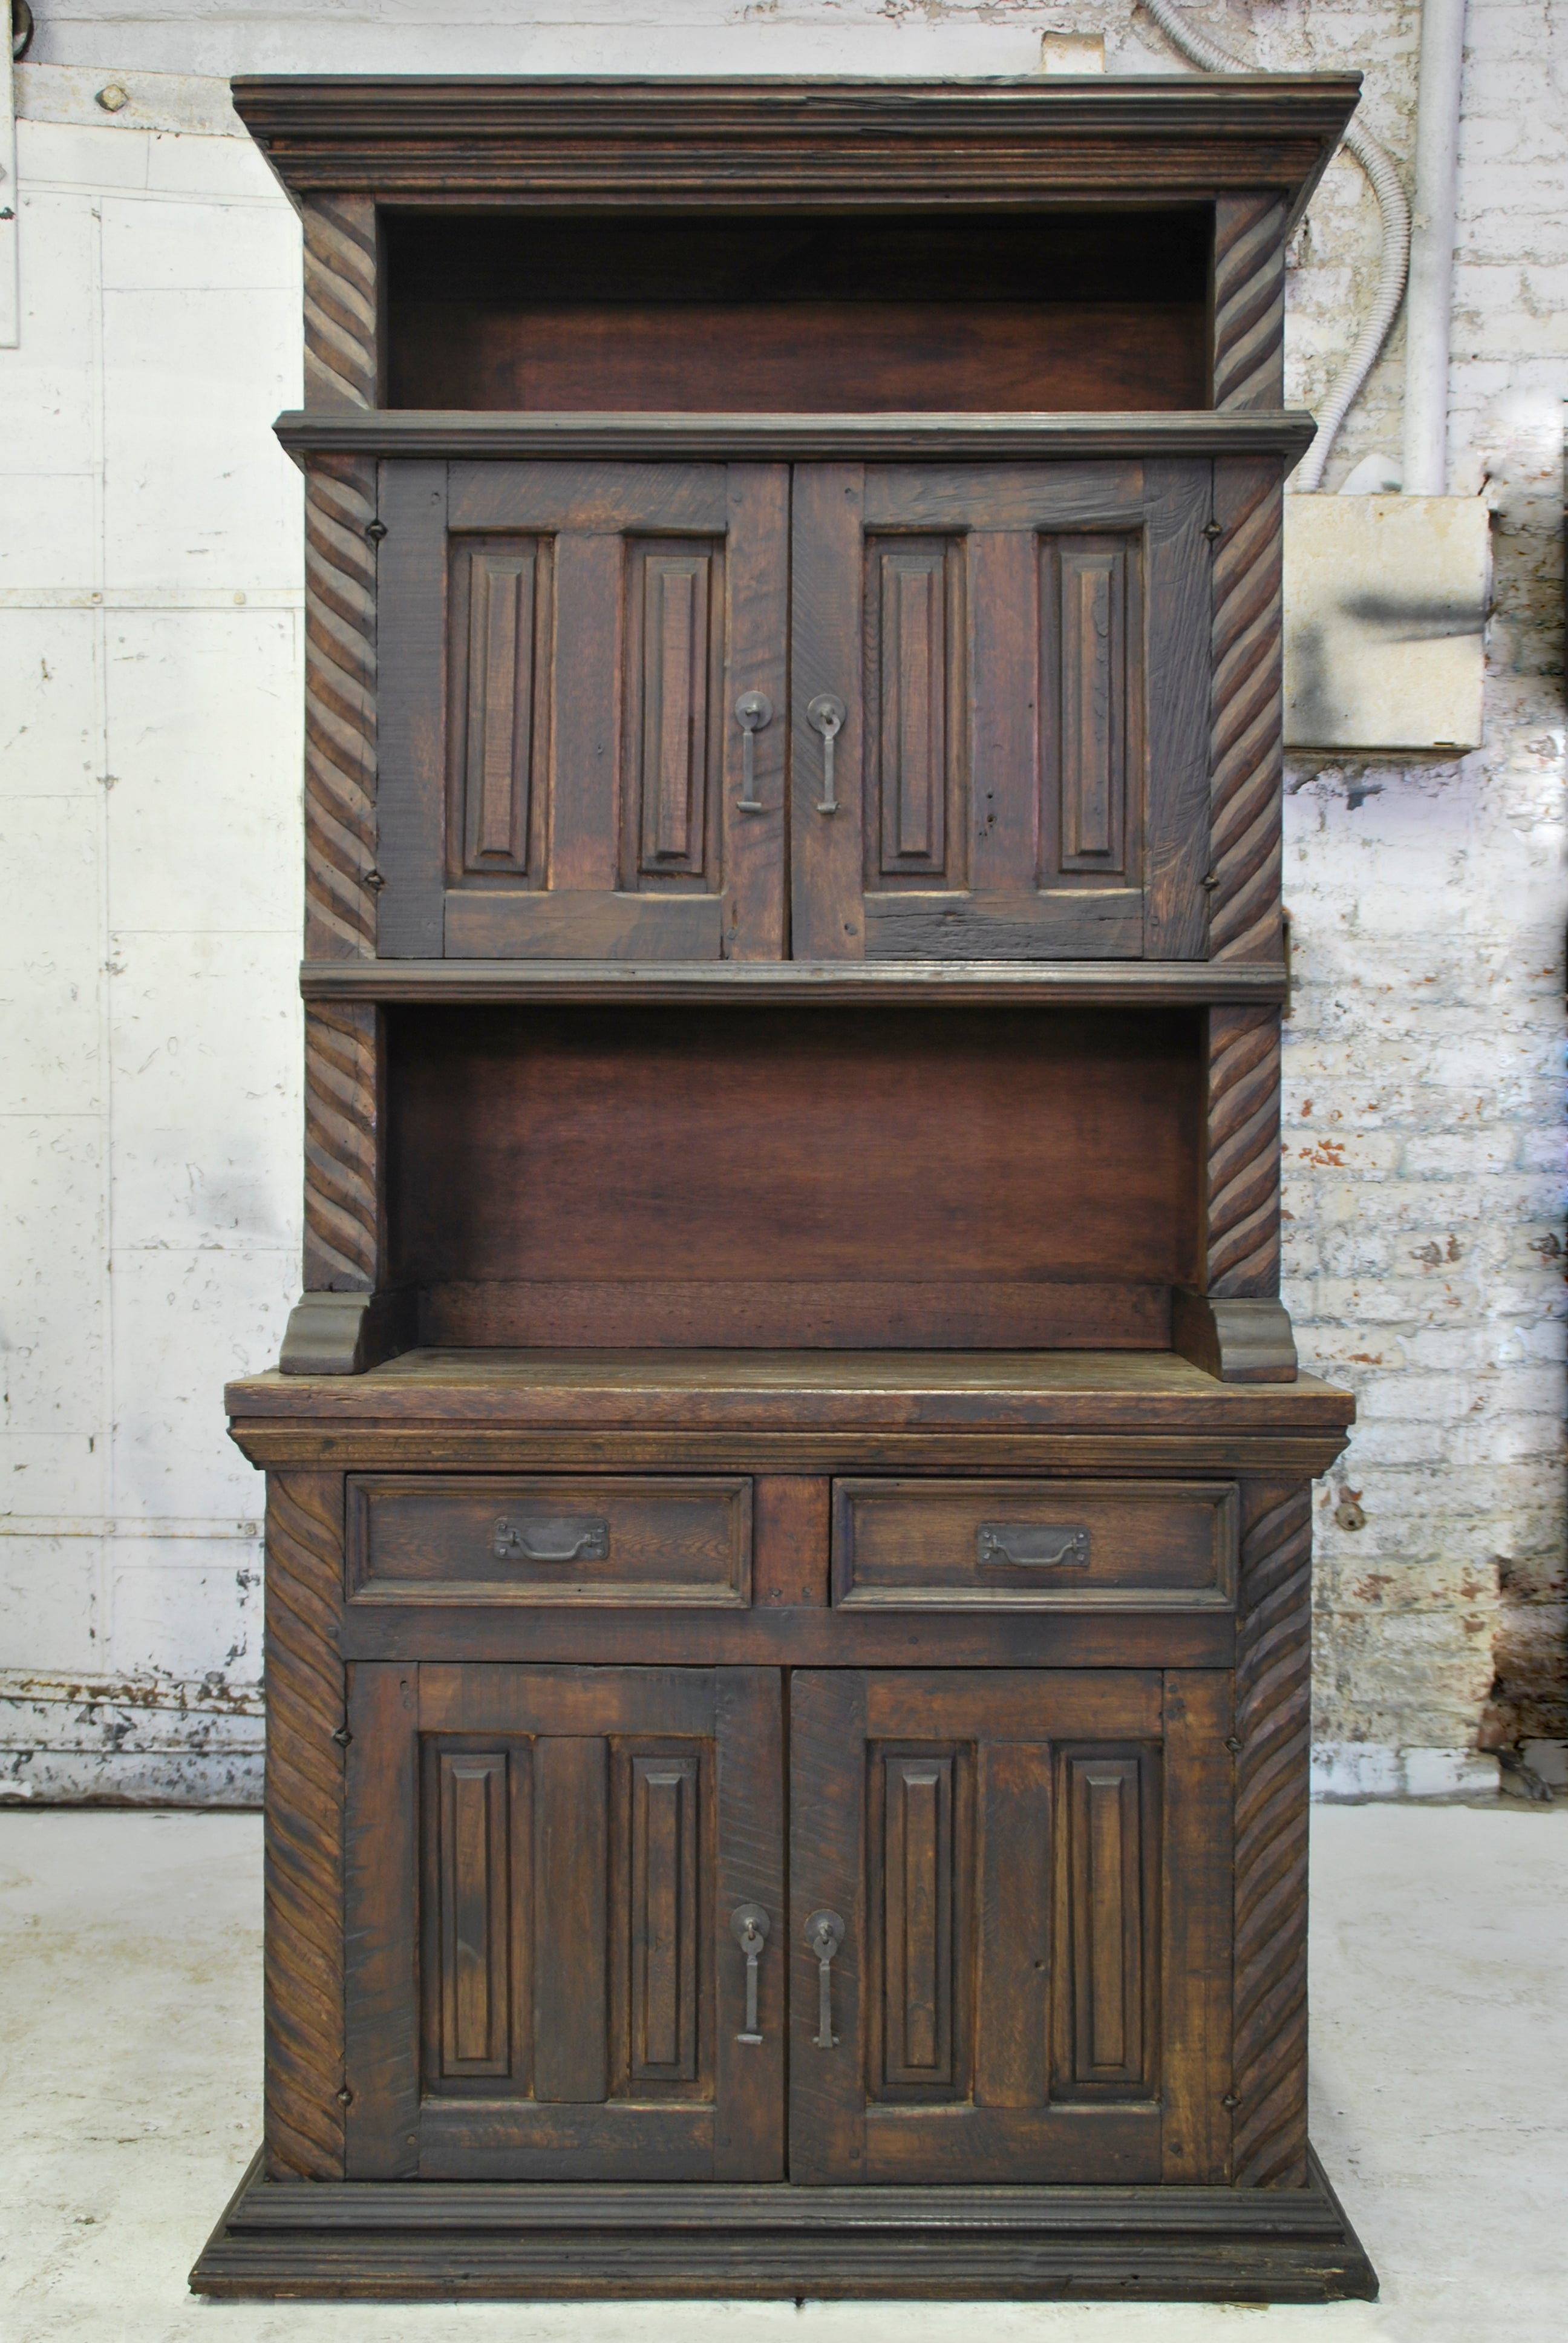 Barn Wood Hutch - Column Carving Accents